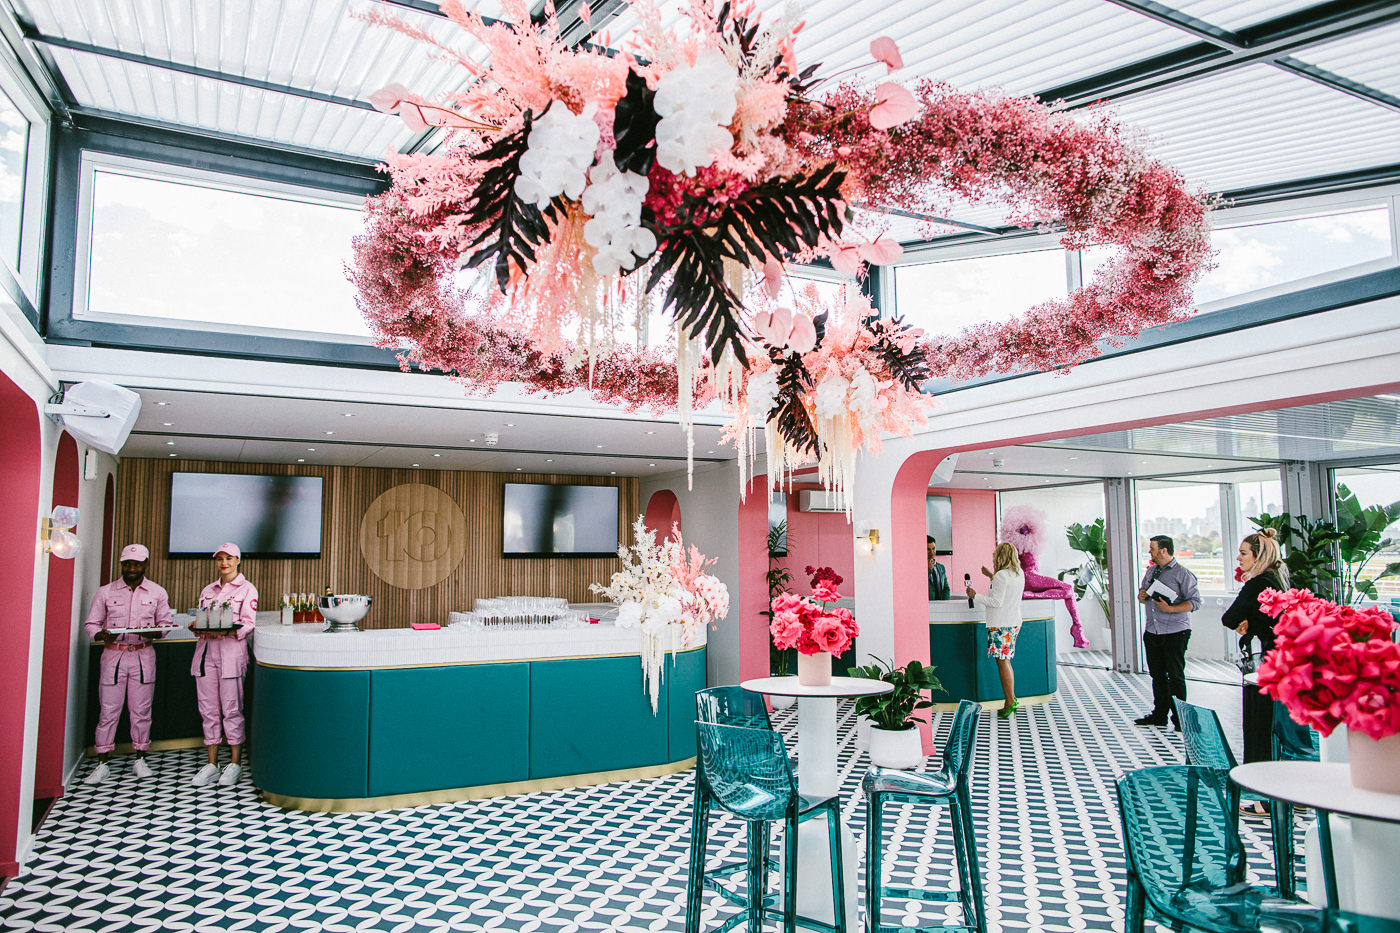 channel 10 marquee at the birdcage - 1st level - enjoy the races in a tv studio